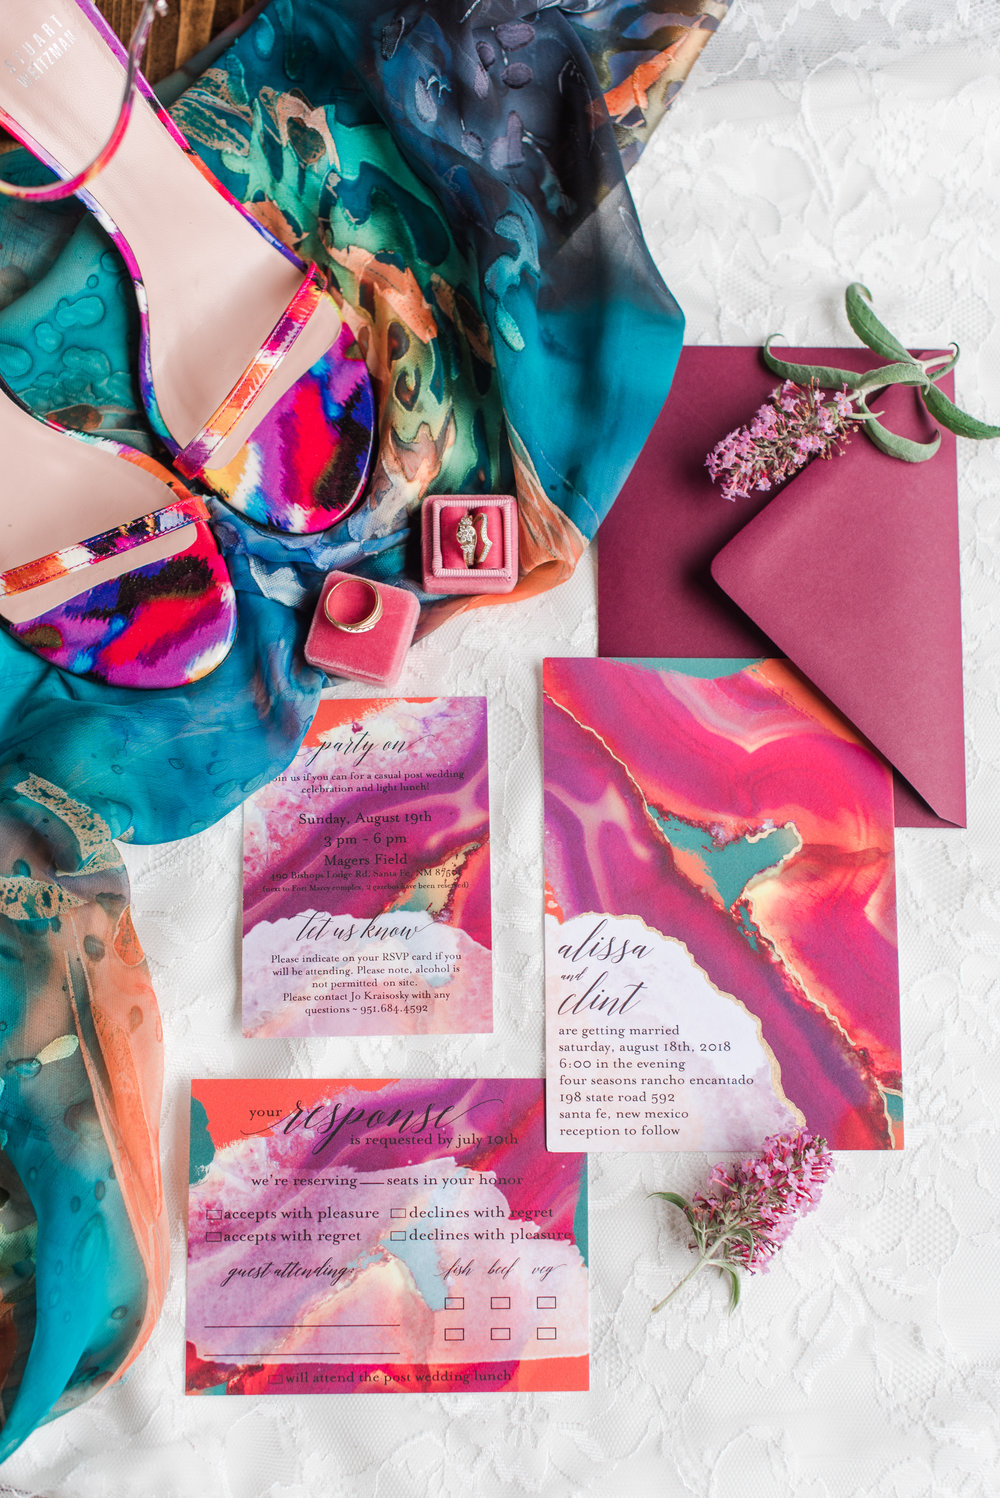 Alissa and Clint were just the perfect blend of bold, fearless and bright, and their invitations were nothing short of jaw-dropping. Photo by the Queen herself,  Maura Jane Photography